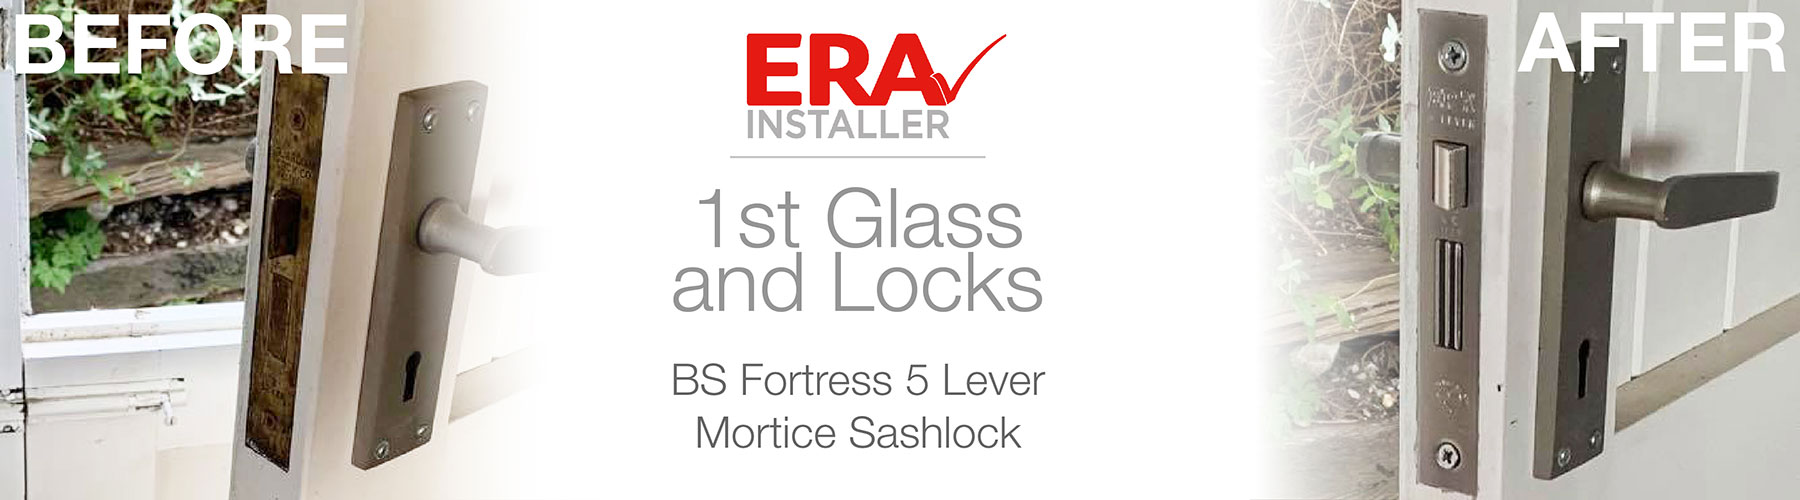 ERA Installer Testimonial 1st glass and locks fortress